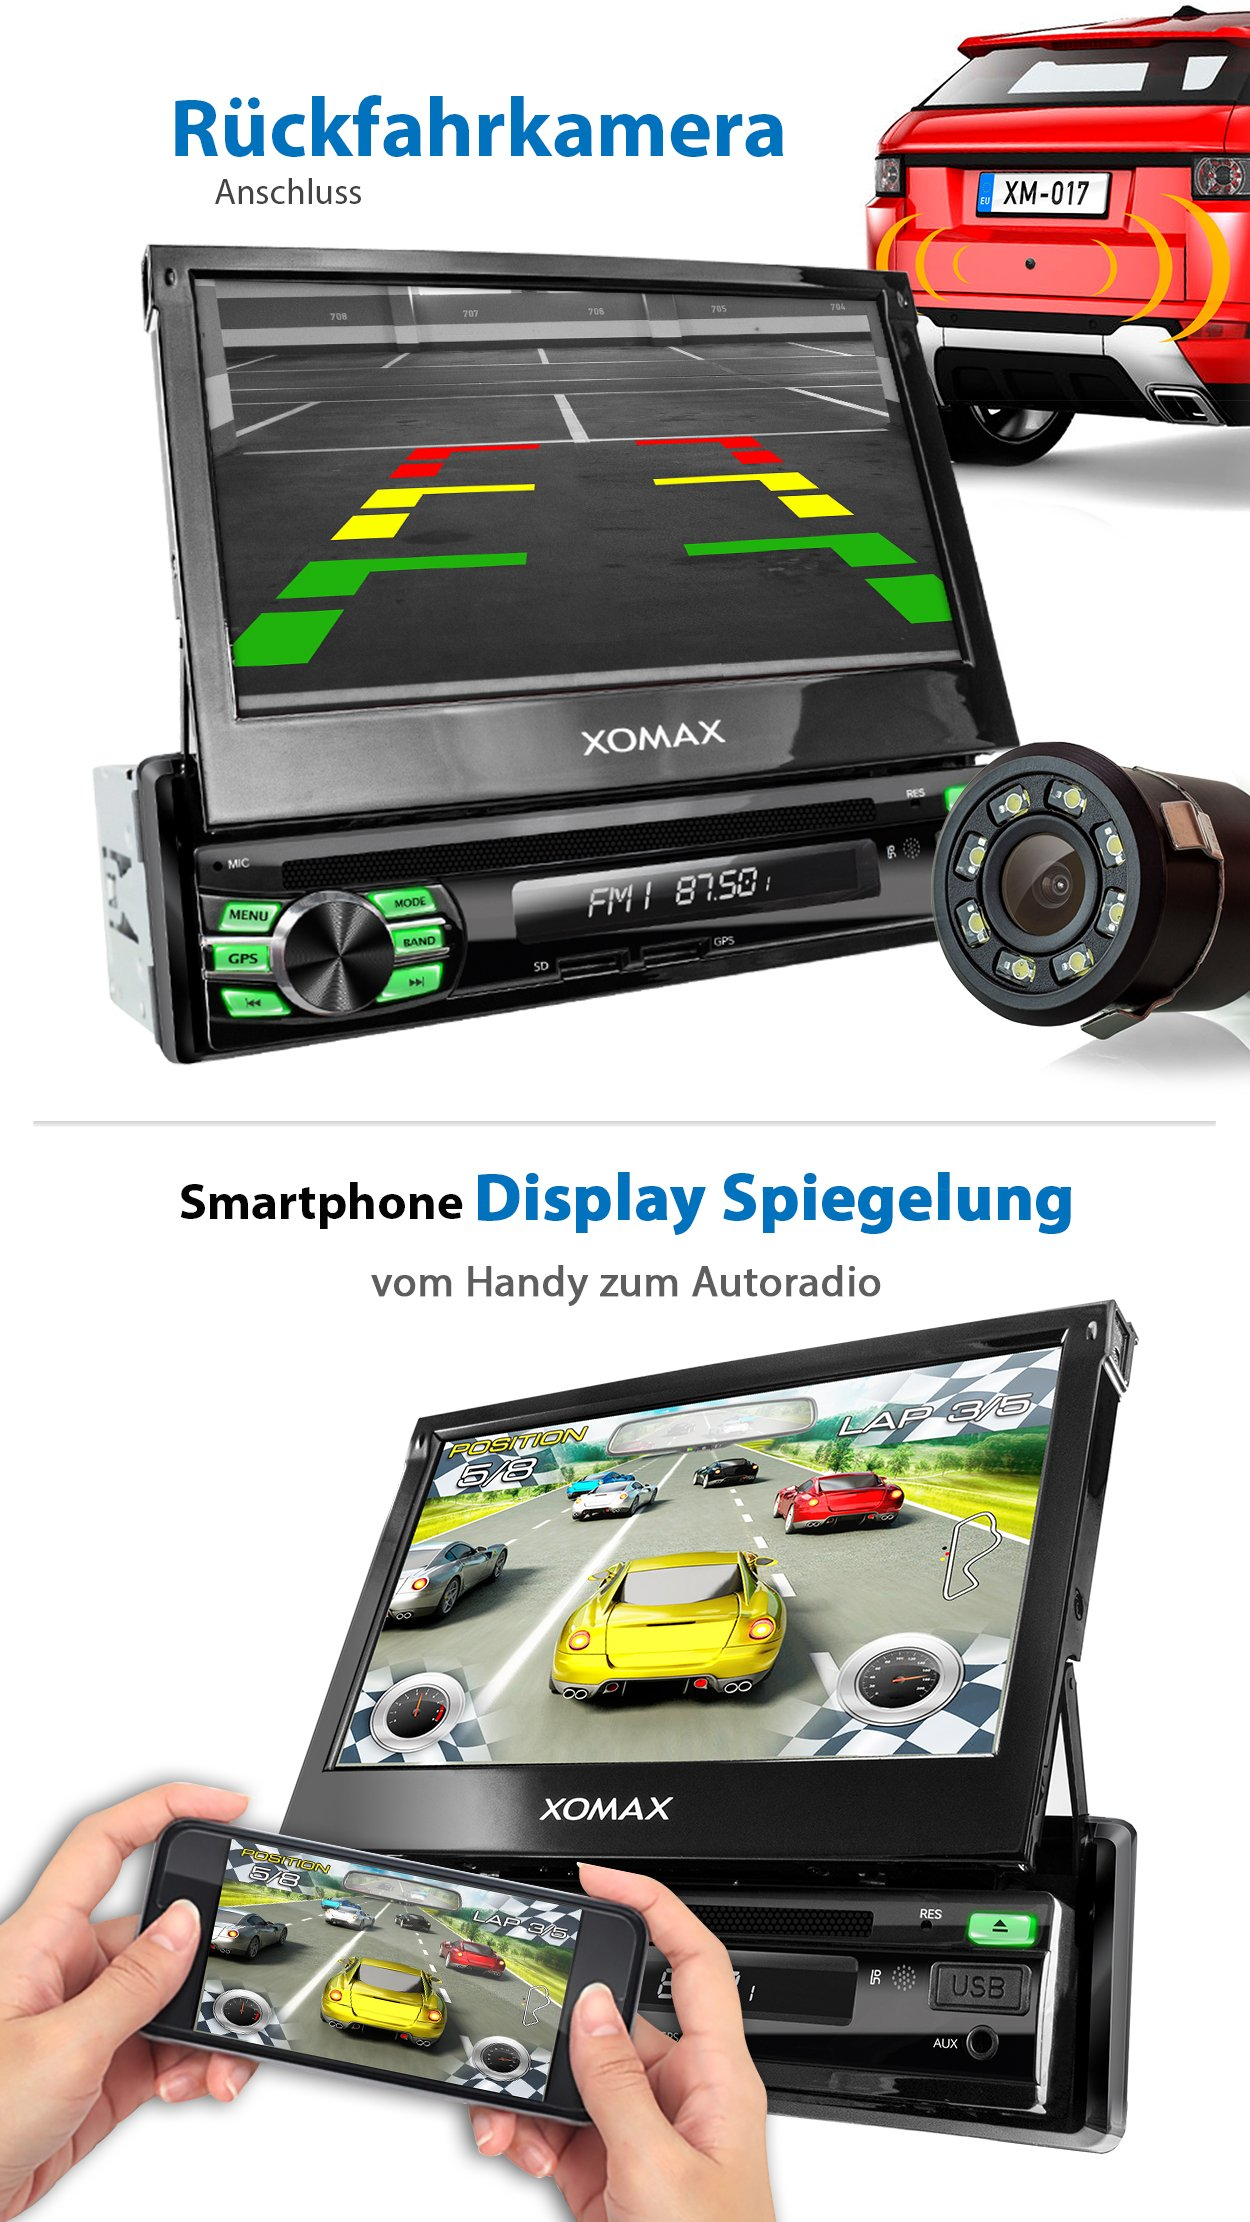 XOMAX-XM-DA708-Autoradio-mit-Android-711-2GB-RAM-Quad-Core-I-WiFi-3G-DAB-OBD2-Support-I-GPS-Navigation-Bluetooth-I-7-18-cm-Touchscreen-I-DVD-CD-USB-SD-I-1-DIN